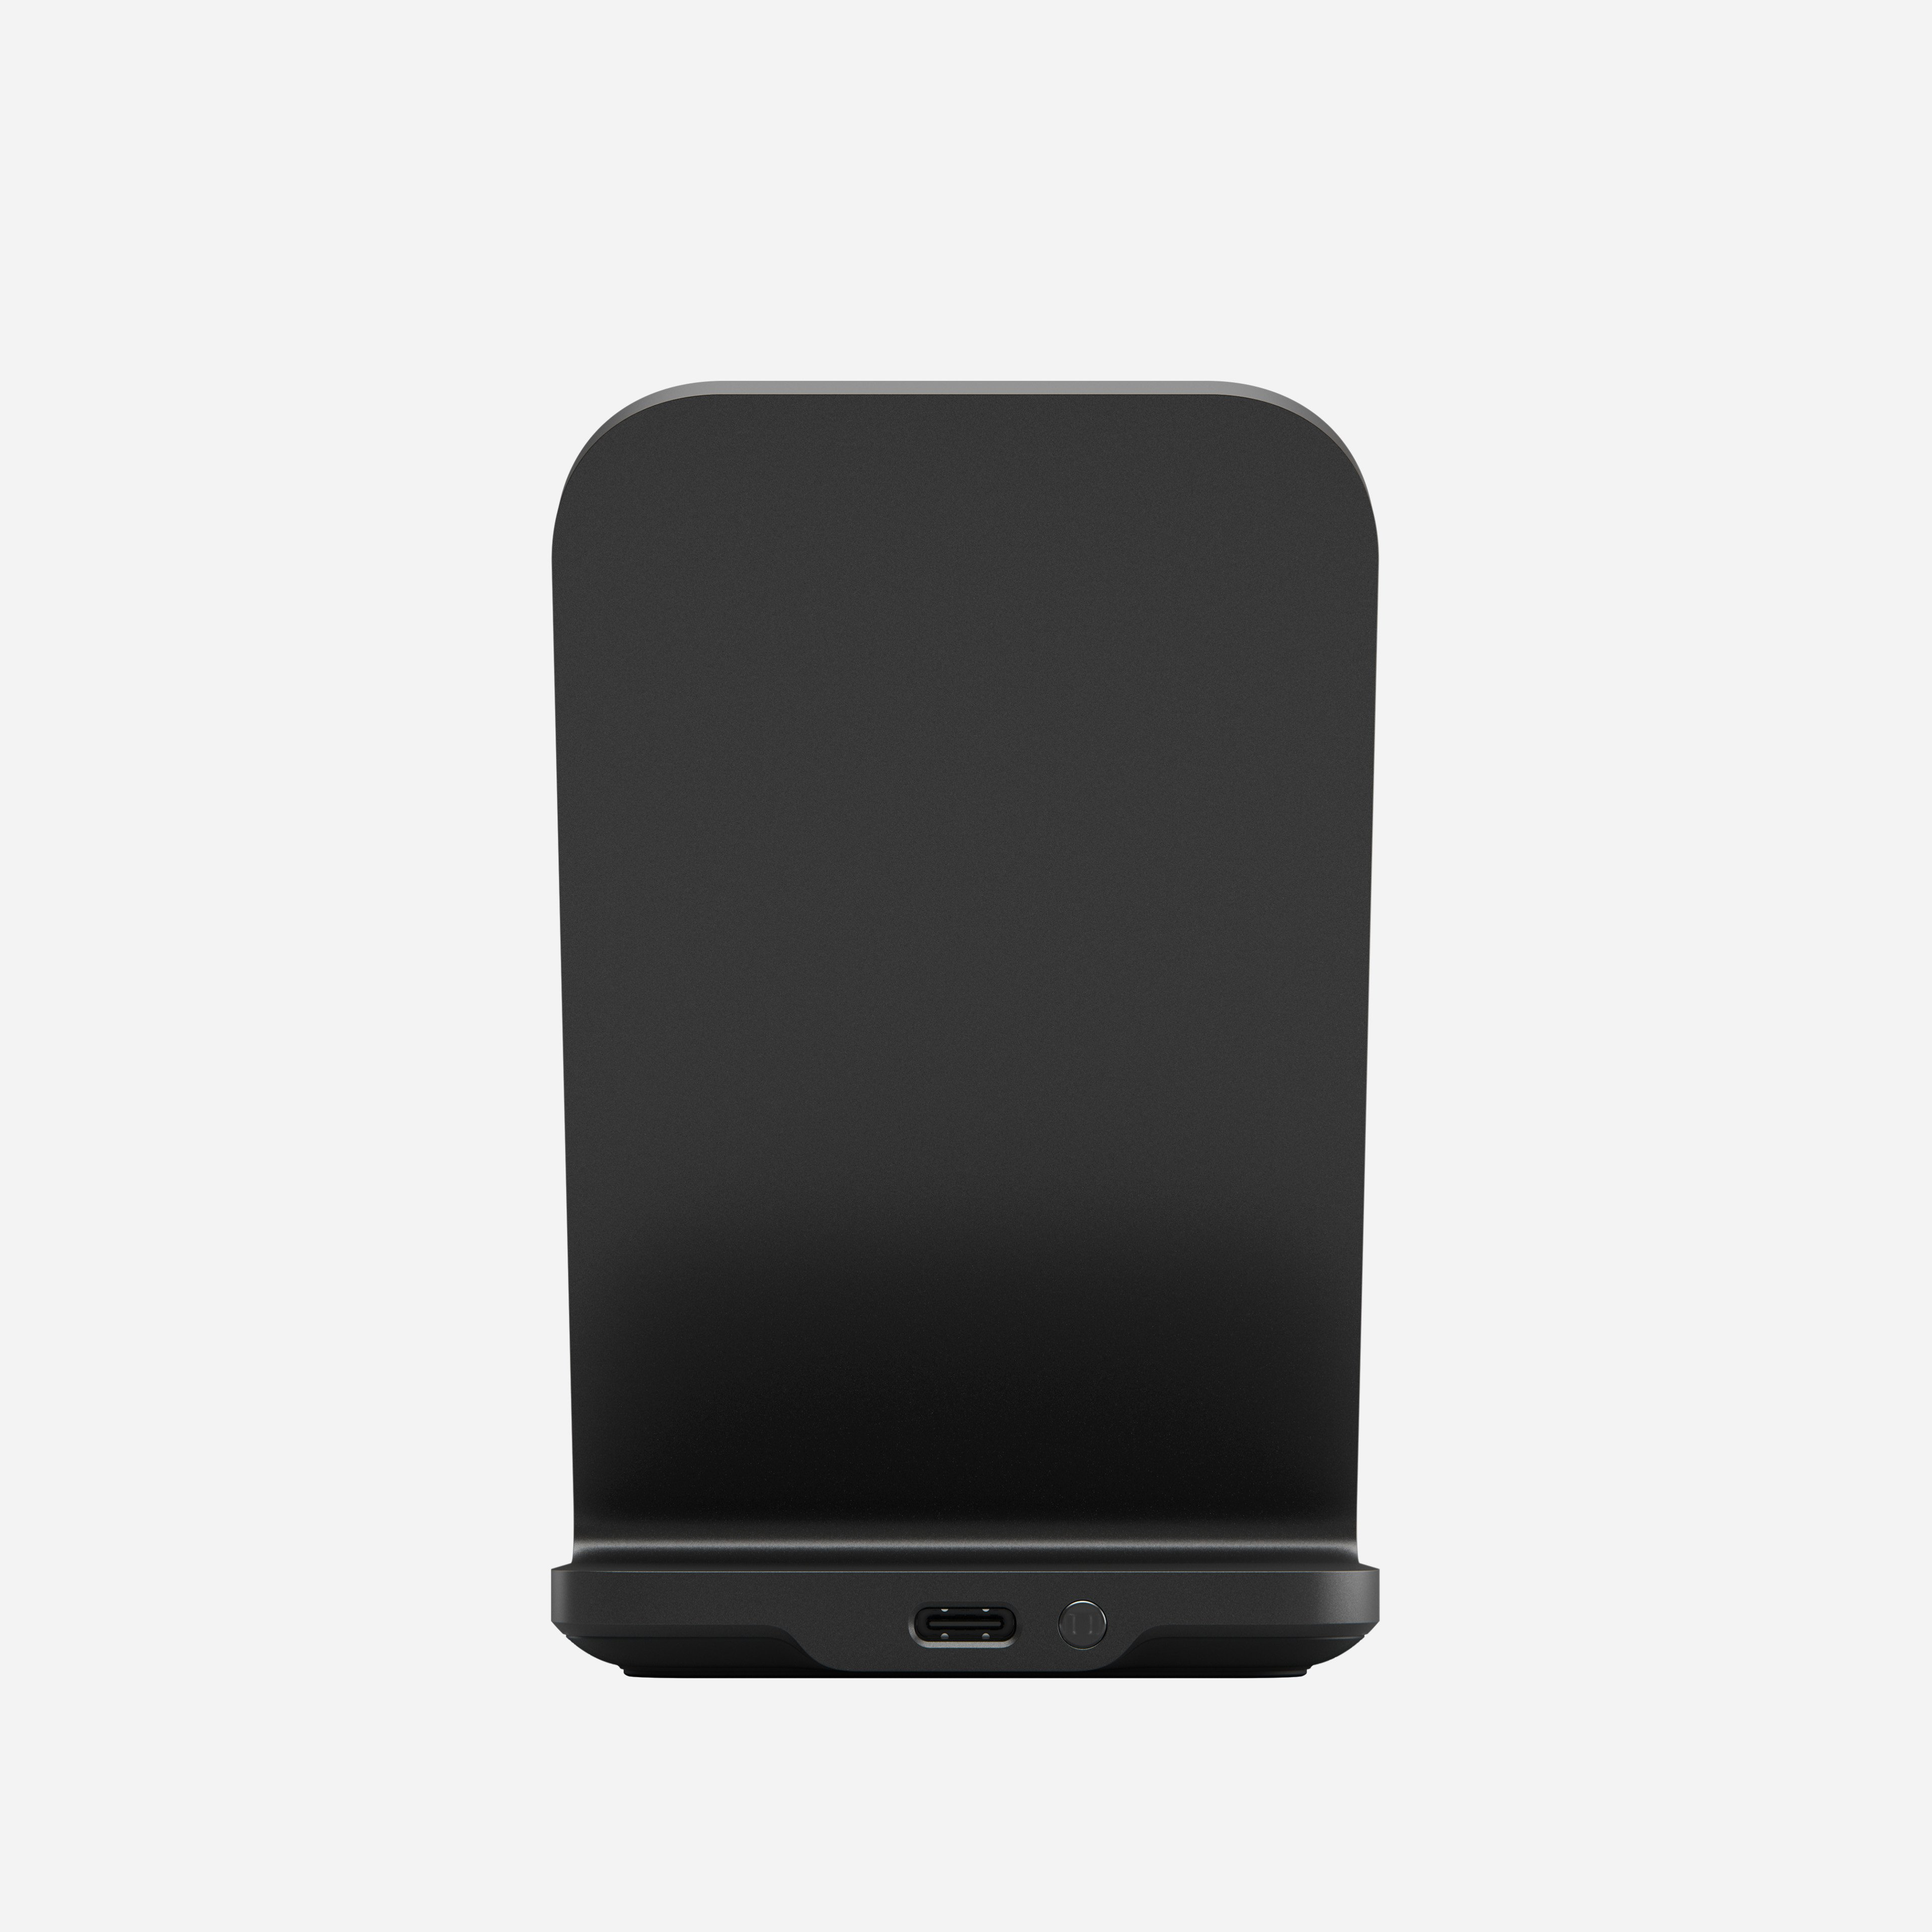 Base Station Stand Back View